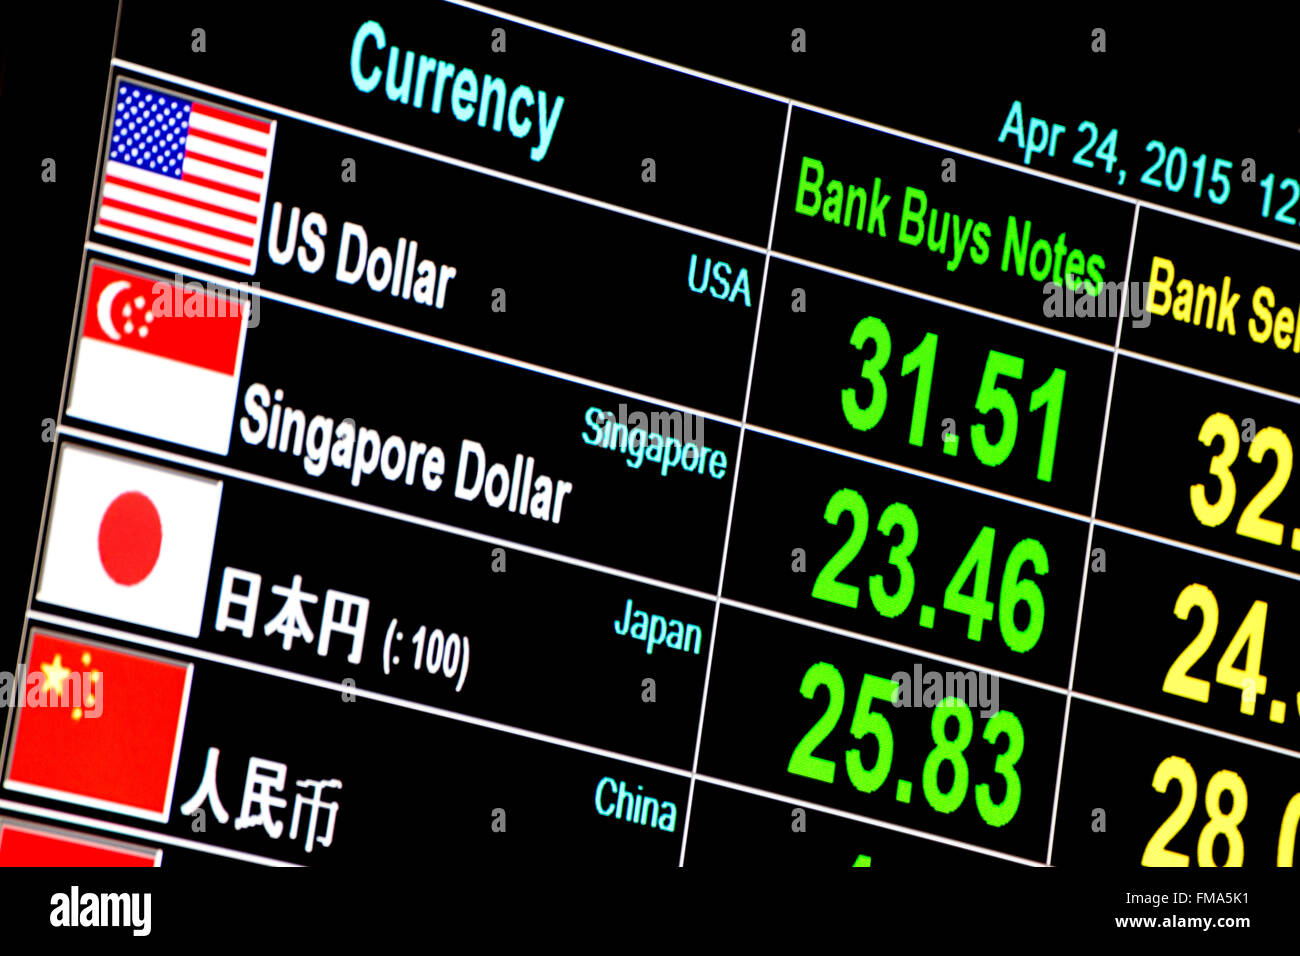 Trading on currency